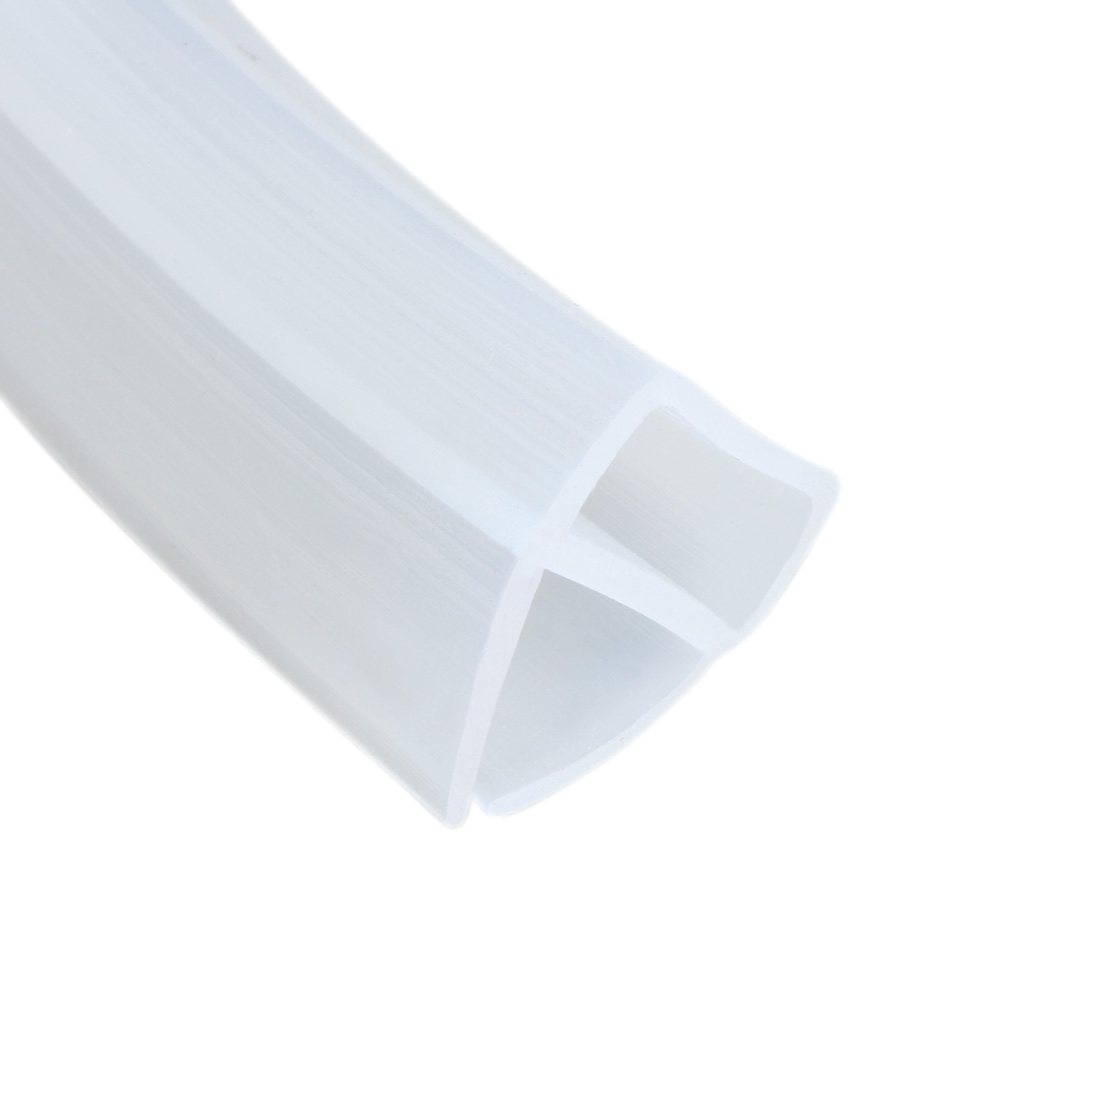 39-inch U Shaped Frameless Window Shower Door Seal Clear for 12mm (approx 15/32-inch) Glass